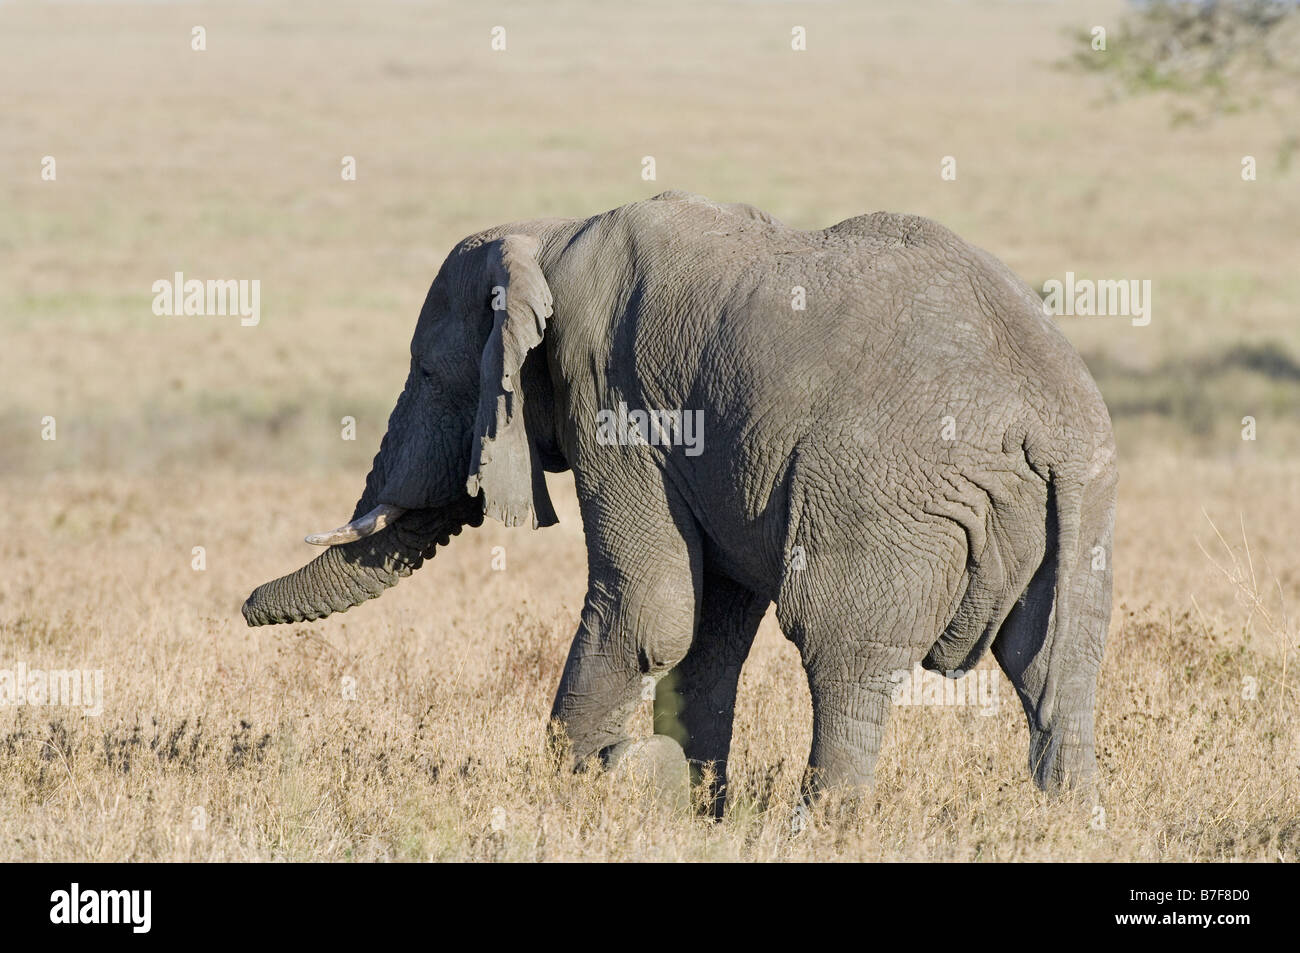 African elephant with amputated trunk tip. The animal learnt to feed and life with a limited functioning trunk Serengeti - Stock Image